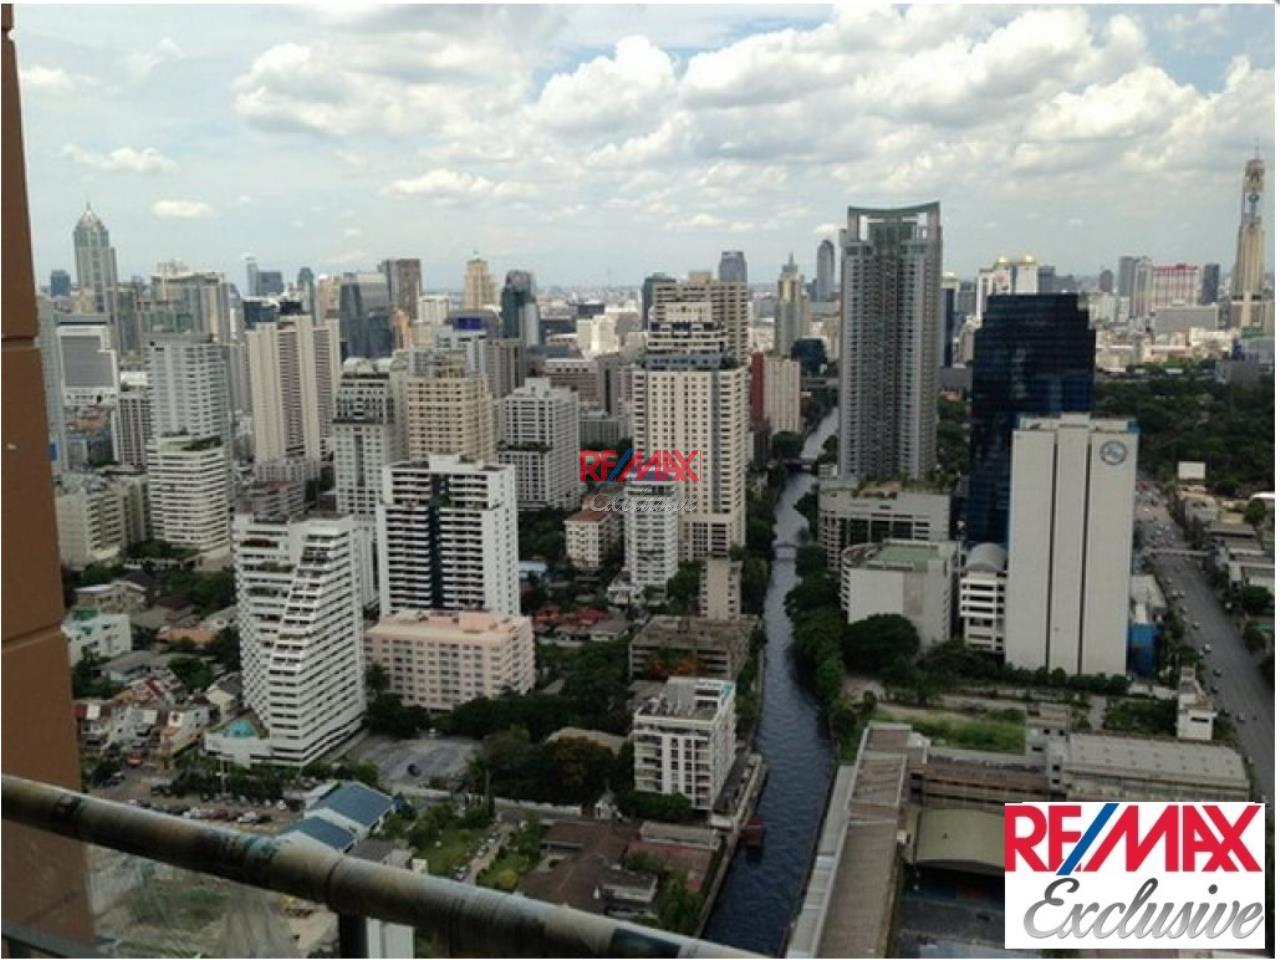 RE/MAX Exclusive Agency's Villa Asoke Penthouse With Scenic View, 5 Bedrooms, 200 Sqm, For Sale 31,300,000 THB 8